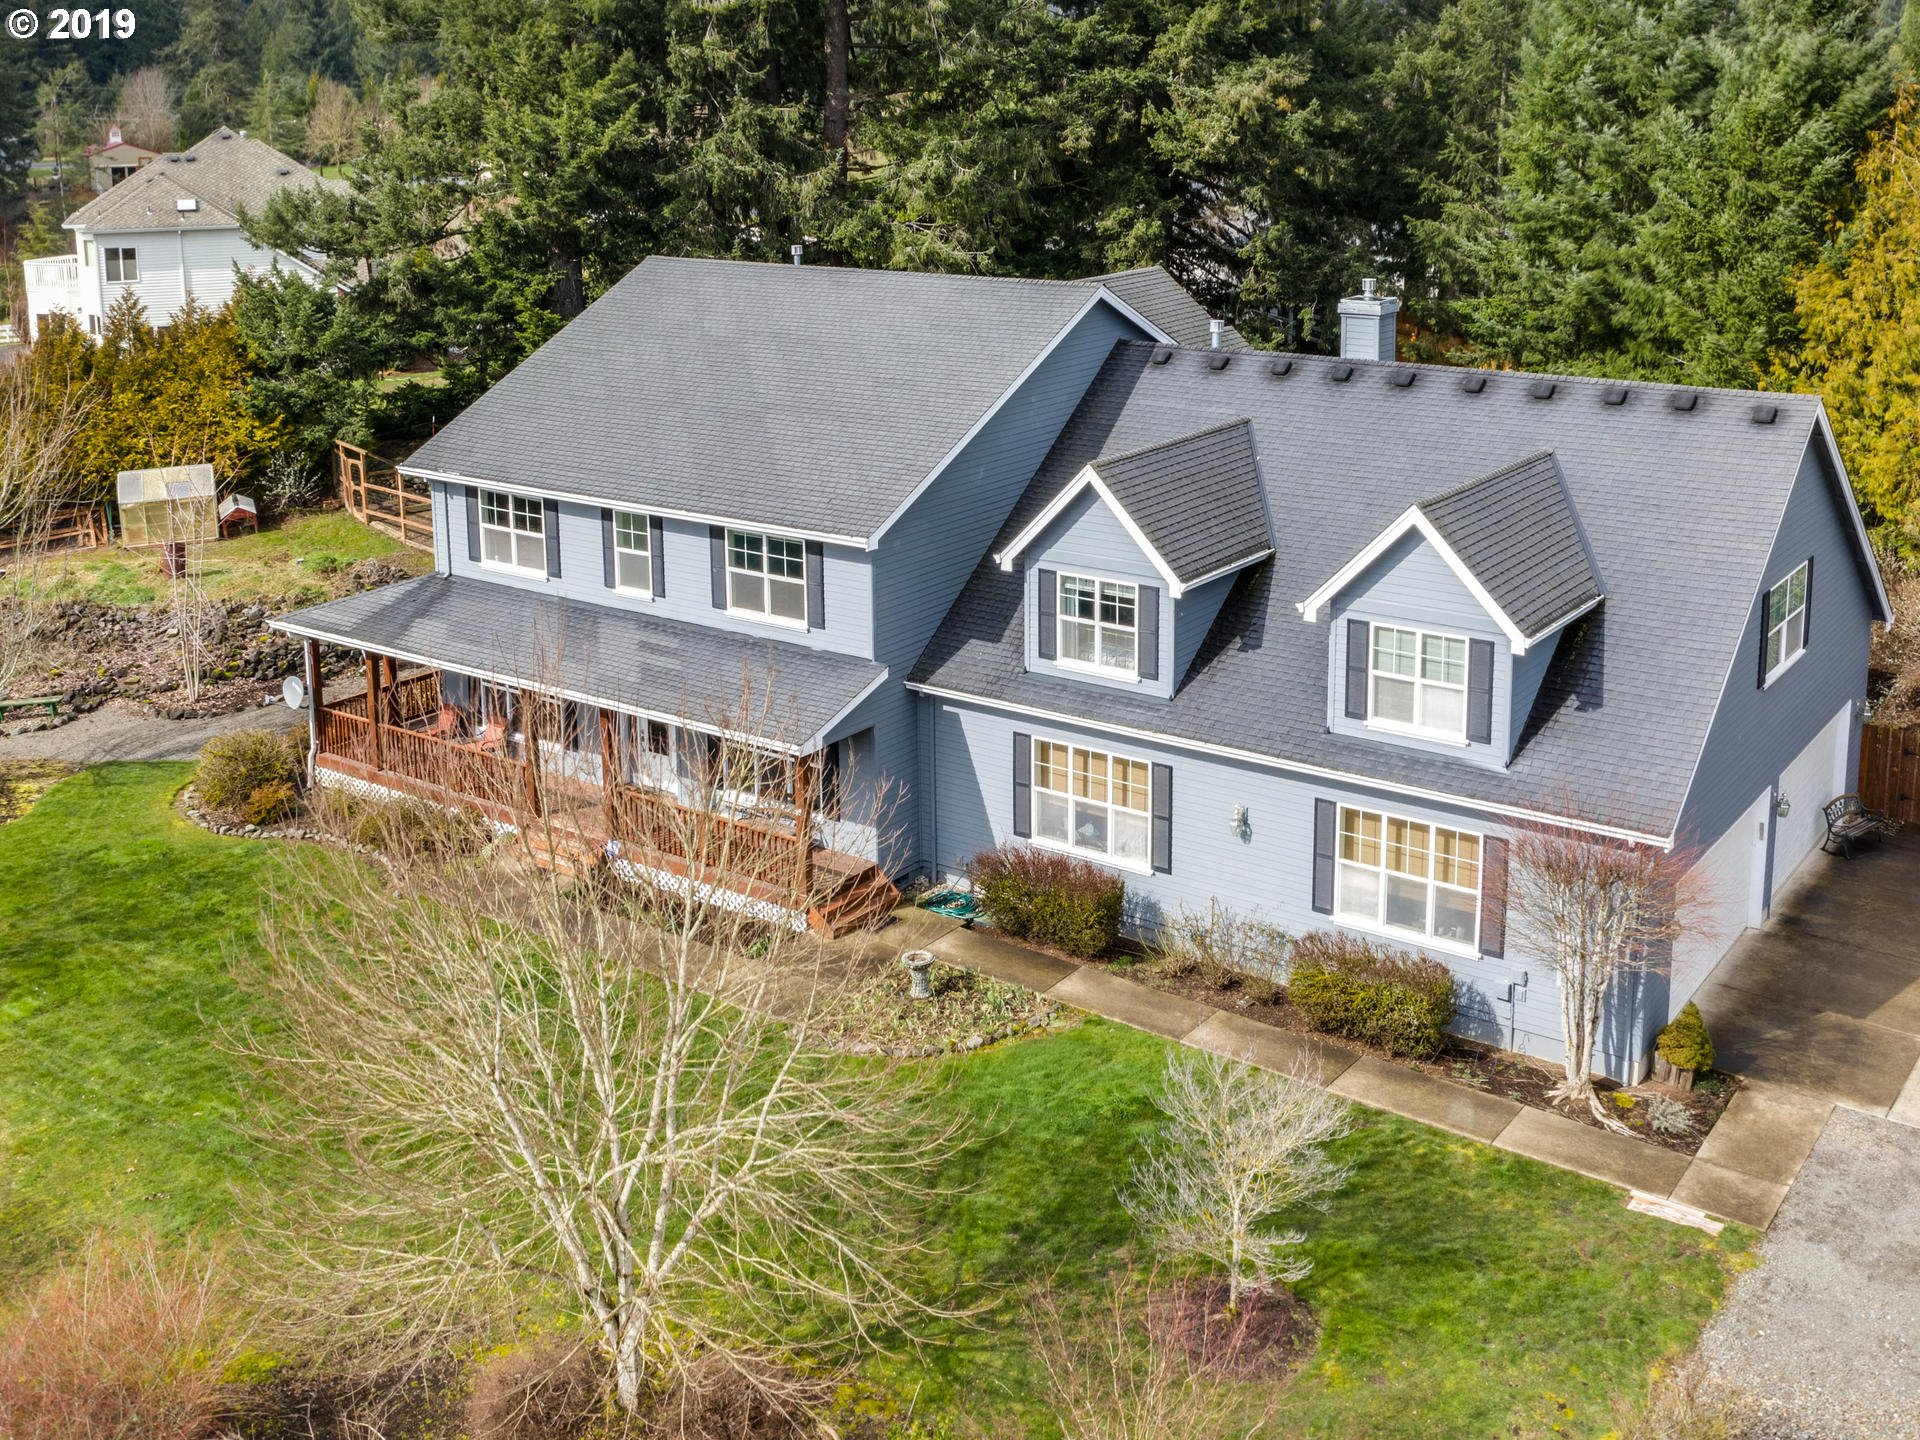 This custom built Oregon City home has a beautiful setting, wrap around porch with open views to the SE! Features 5 bedrooms up + a den/office on main floor, 3 1/2 baths, Very Large kitchen w/island, 2 sinks, 2 ovens & 2 refrigerators! Family Rm off kitchen w/fireplace & extra storage. Huge bonus rm up currently used as in-law quarters! Oversized 4 car garage has room for shop and plenty of parking. Fenced back yard w/paver patio area.